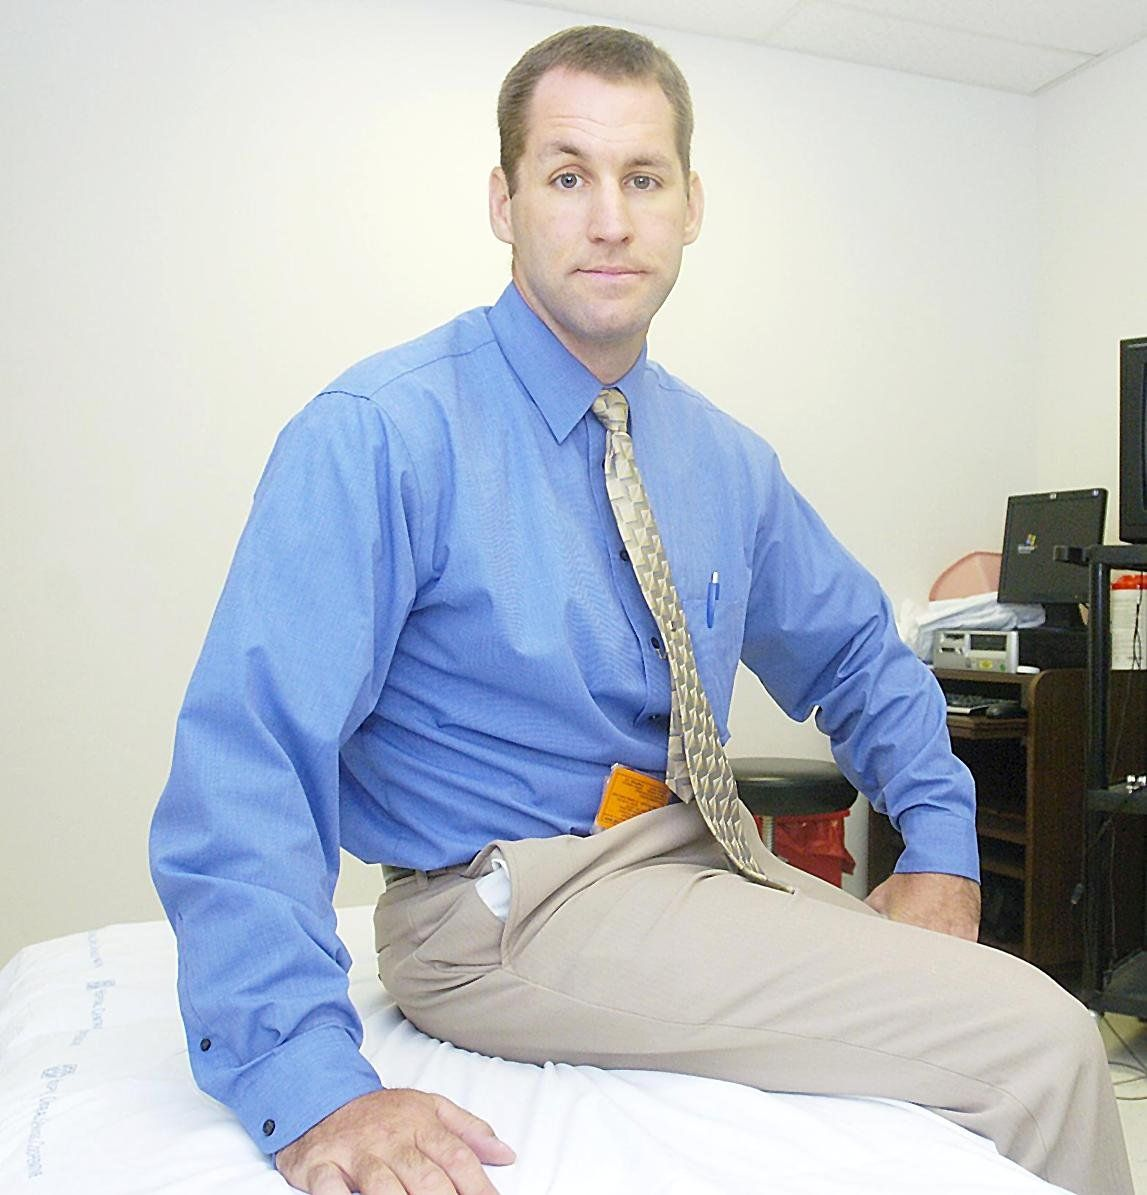 Health south physical therapy - Geisinger Healthsouth Rehabilitation Physical Therapy Team Leader Jeff Walter Recently Received His Certification To Become A Specialist In Neurologic